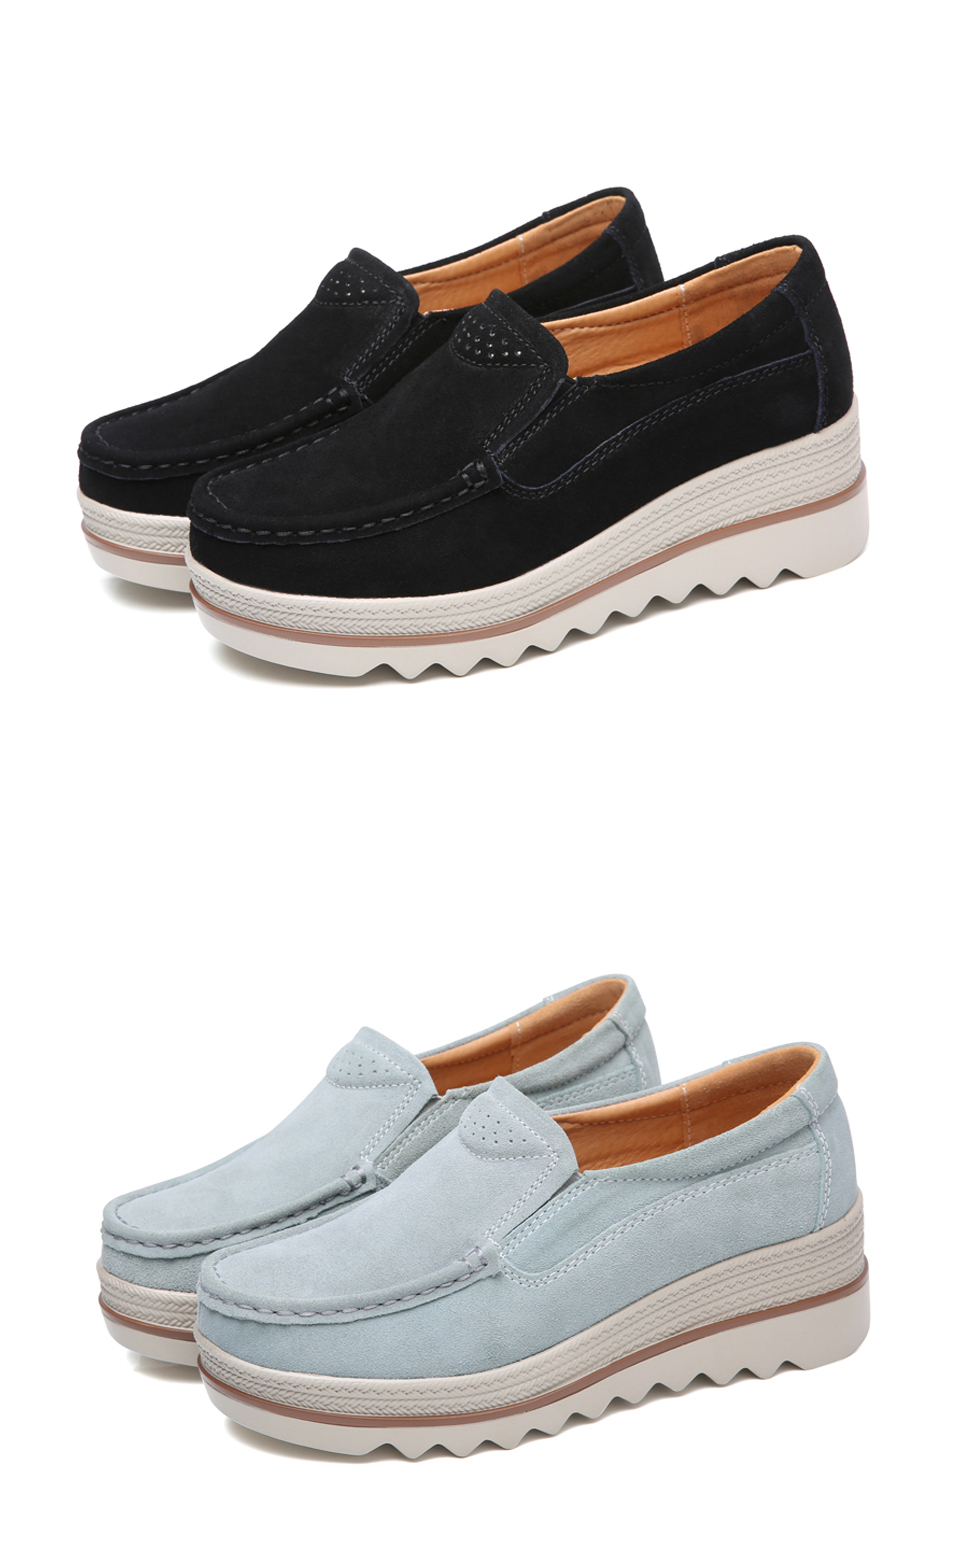 HTB1VBekazzuK1Rjy0Fpq6yEpFXa6 2019 Spring Women Flats Shoes Platform Sneakers Slip On Flats Leather Suede Ladies Loafers Moccasins Casual Shoes Women Creepers